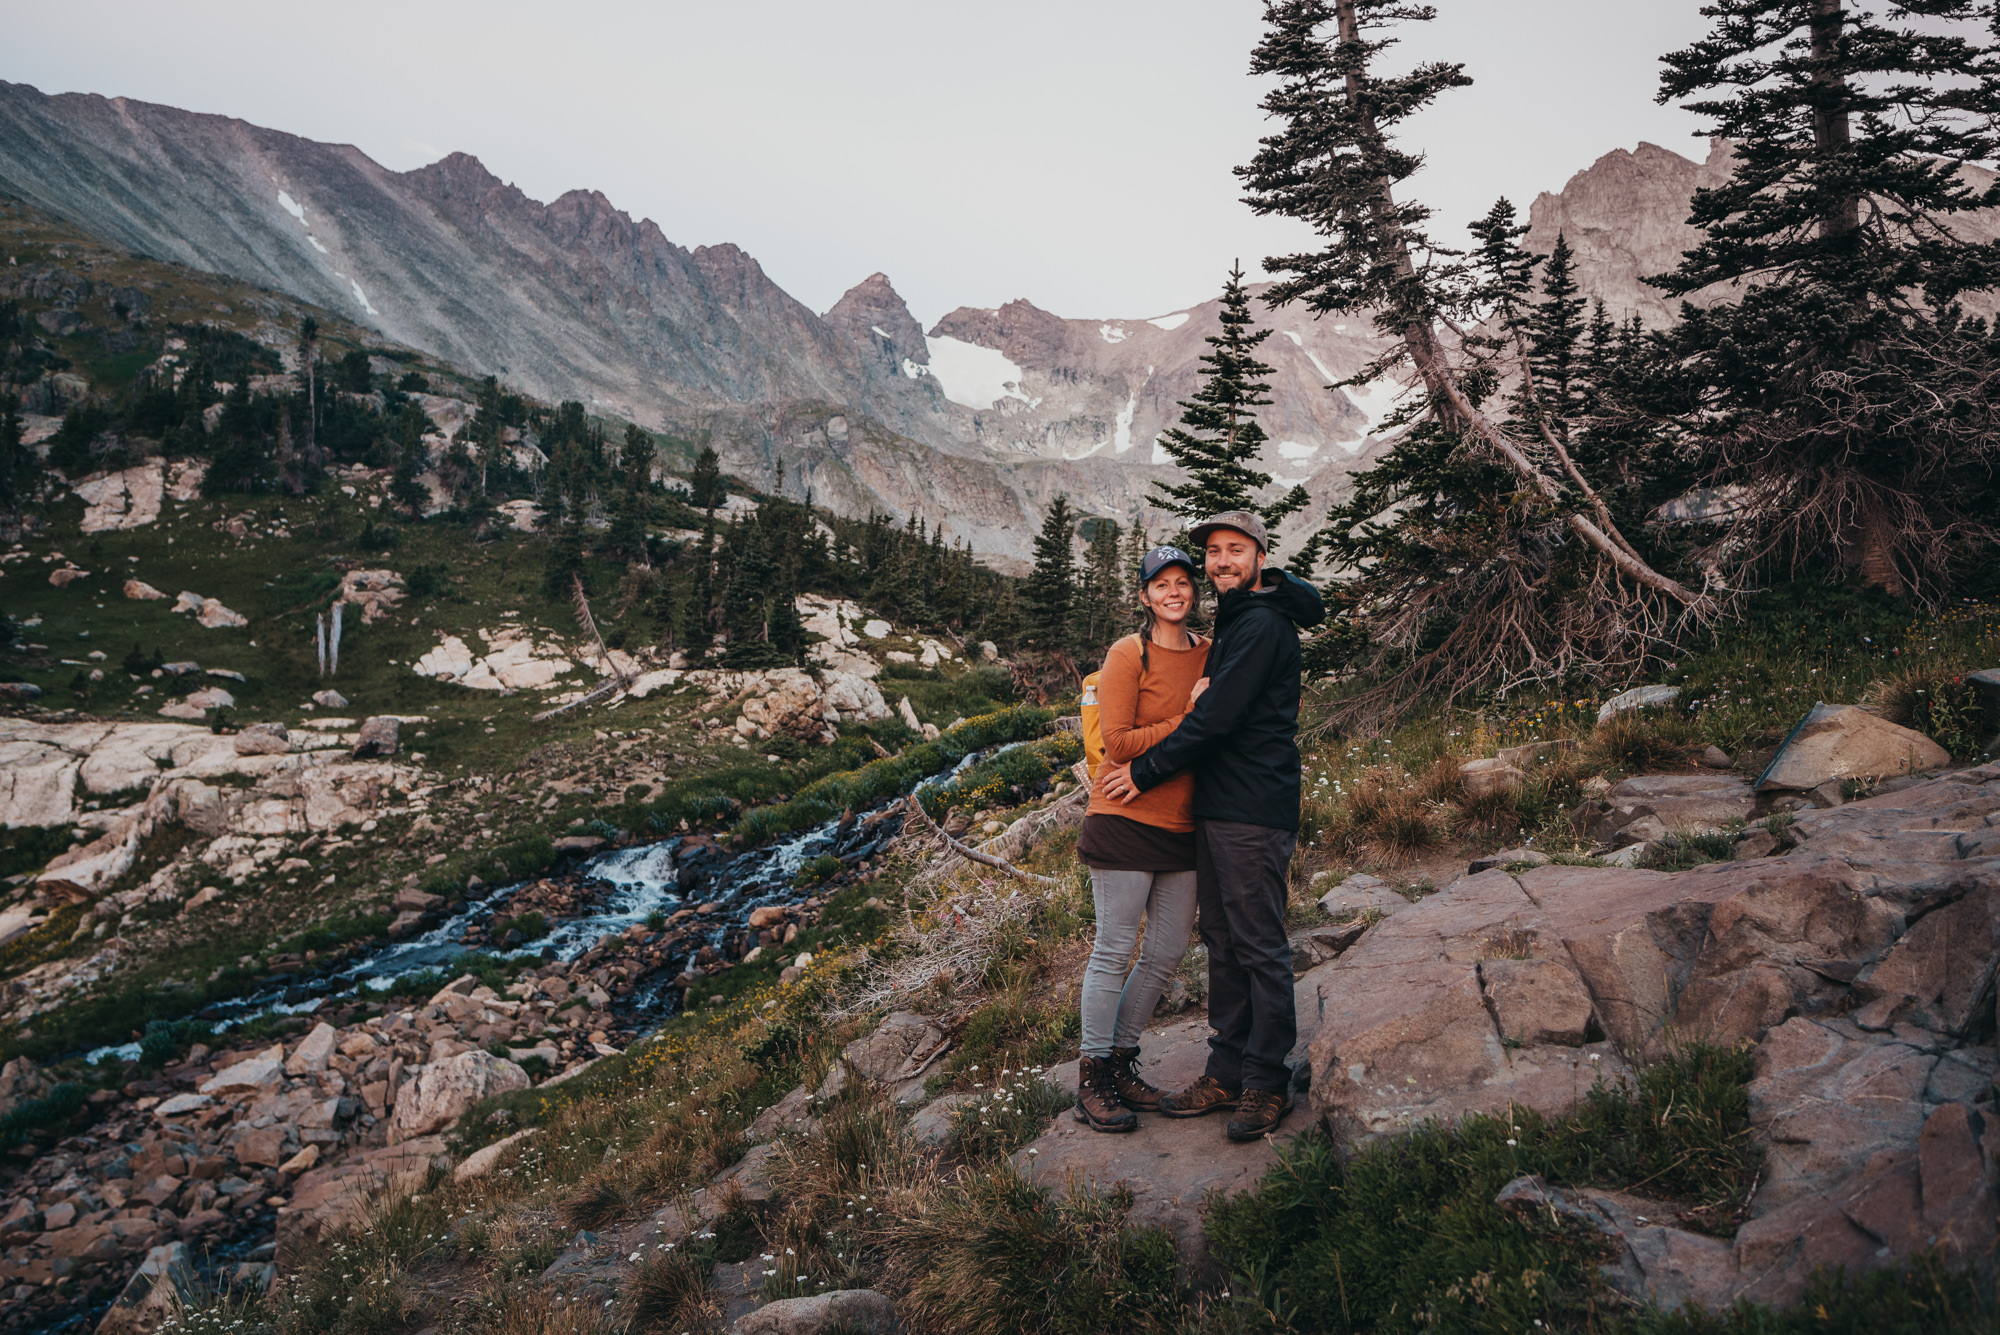 It's great when my husband and I get a photo of us out of the deal! Indian Peaks Wilderness is our favorite place to hike.